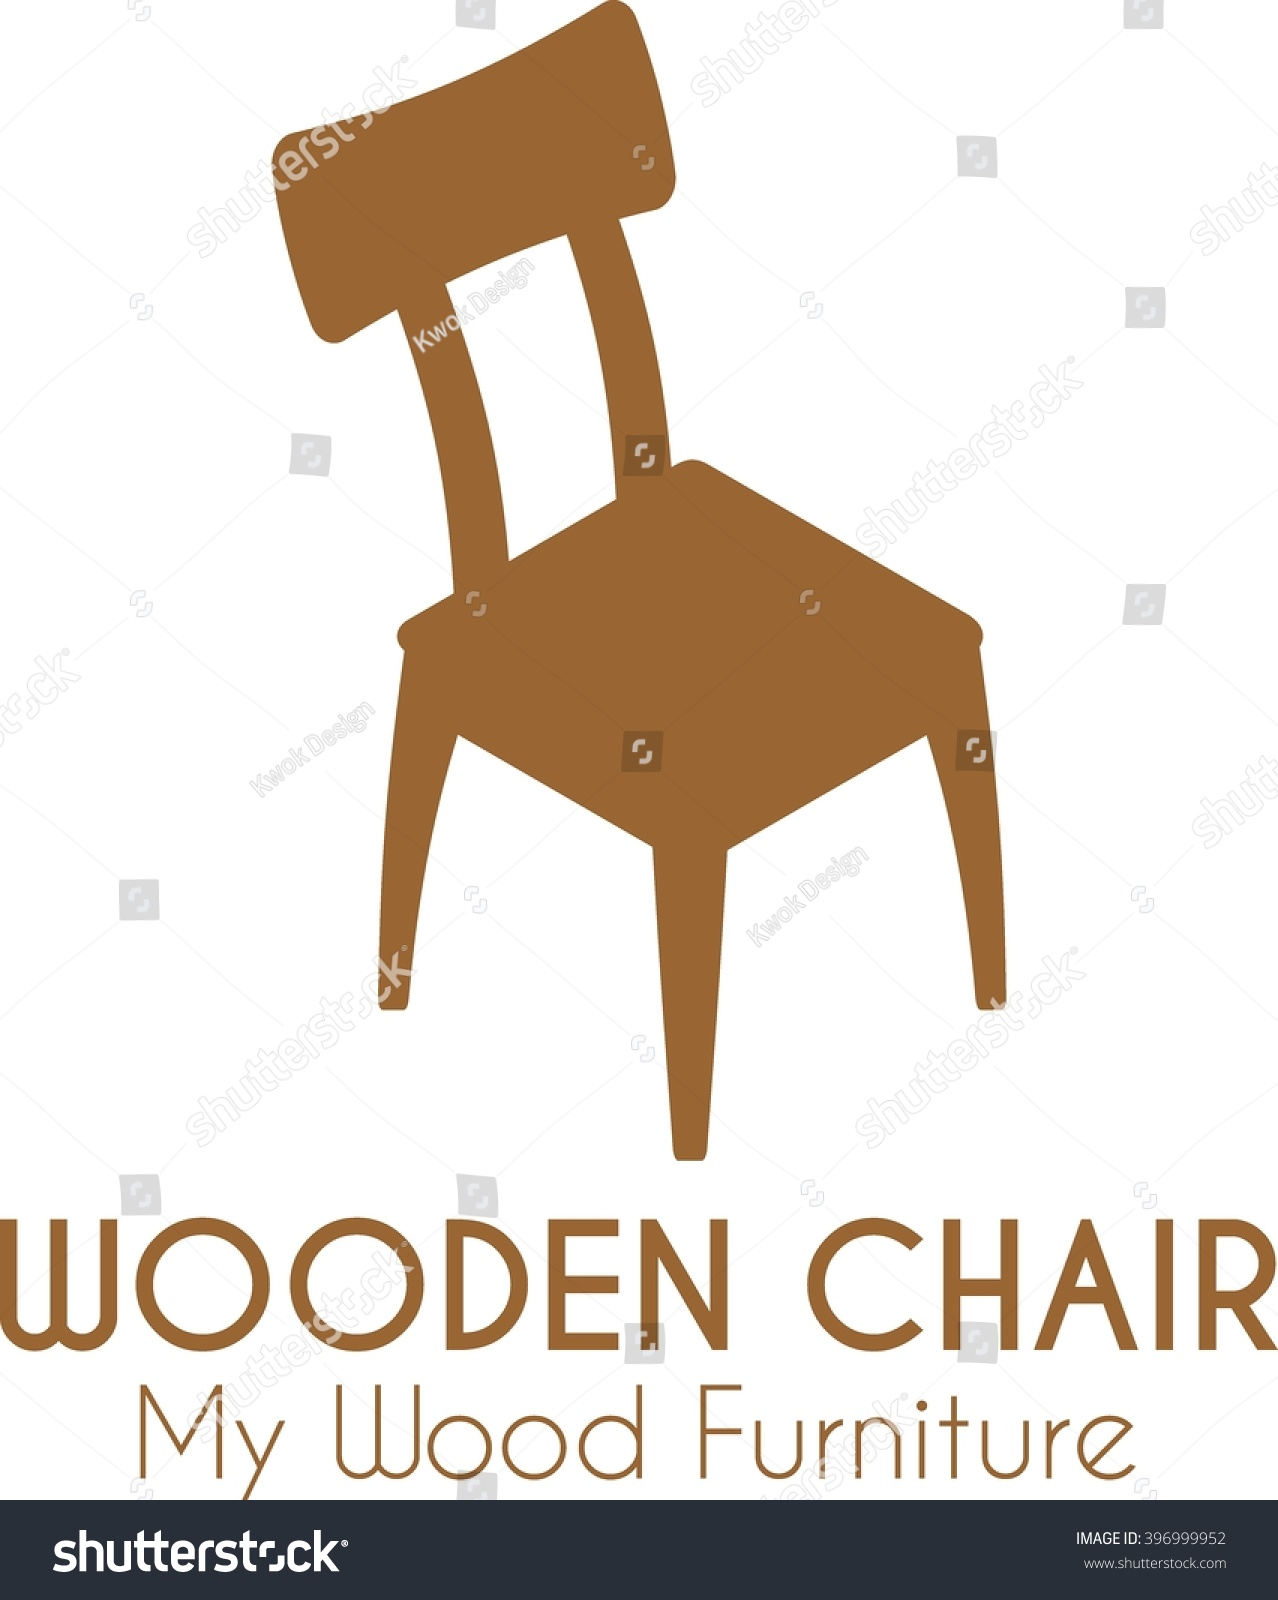 Wooden Chair Business Badge Sign Vector Template For Furniture Store